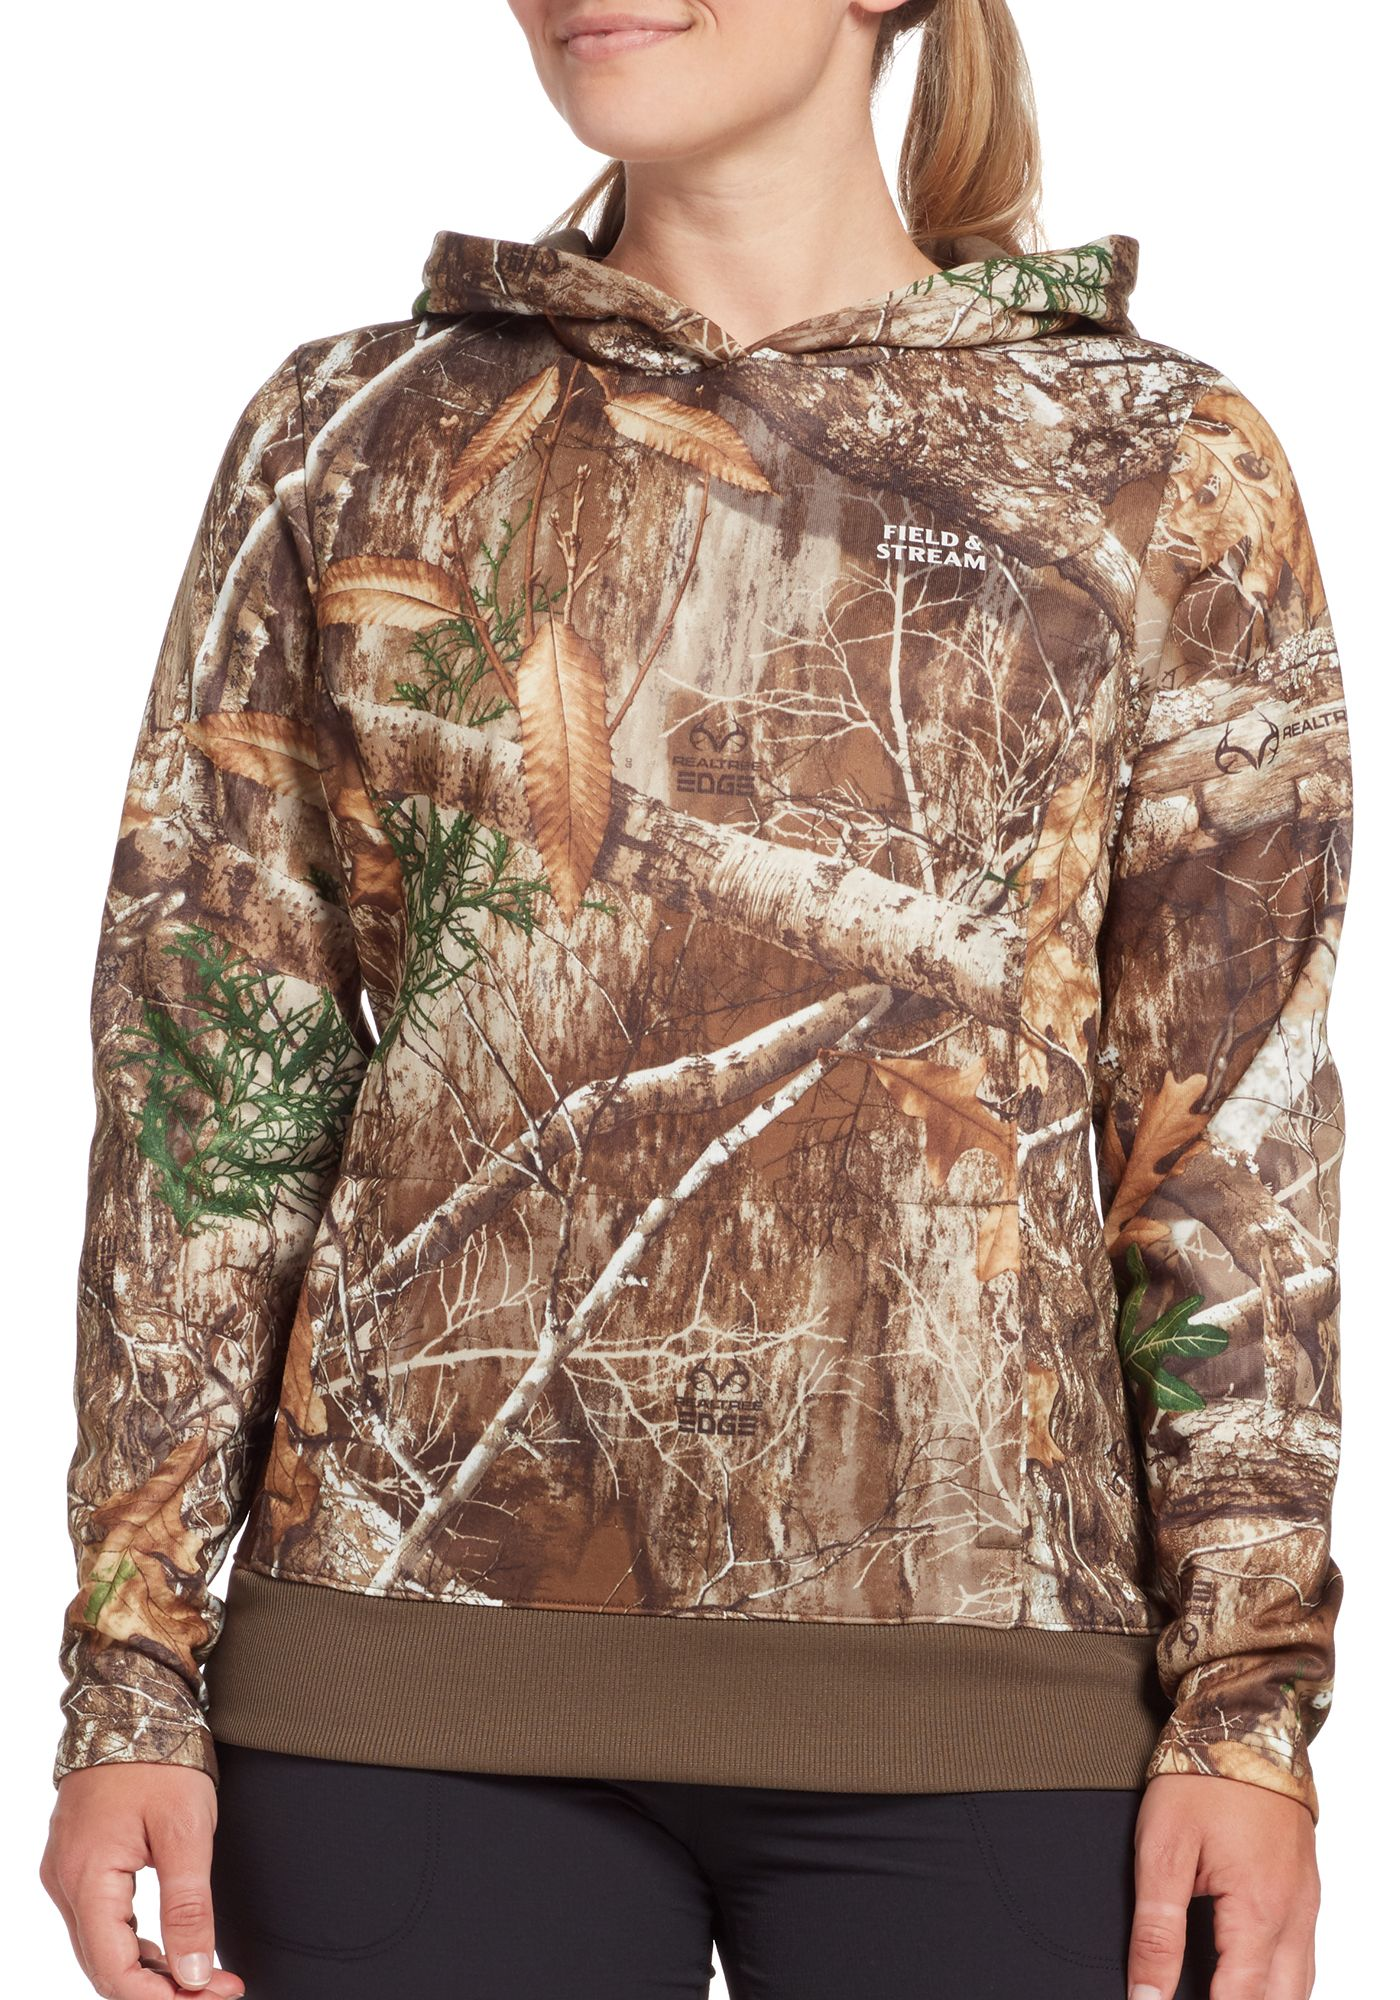 Field and Stream Women's Camo Performance Fleece Hoodie